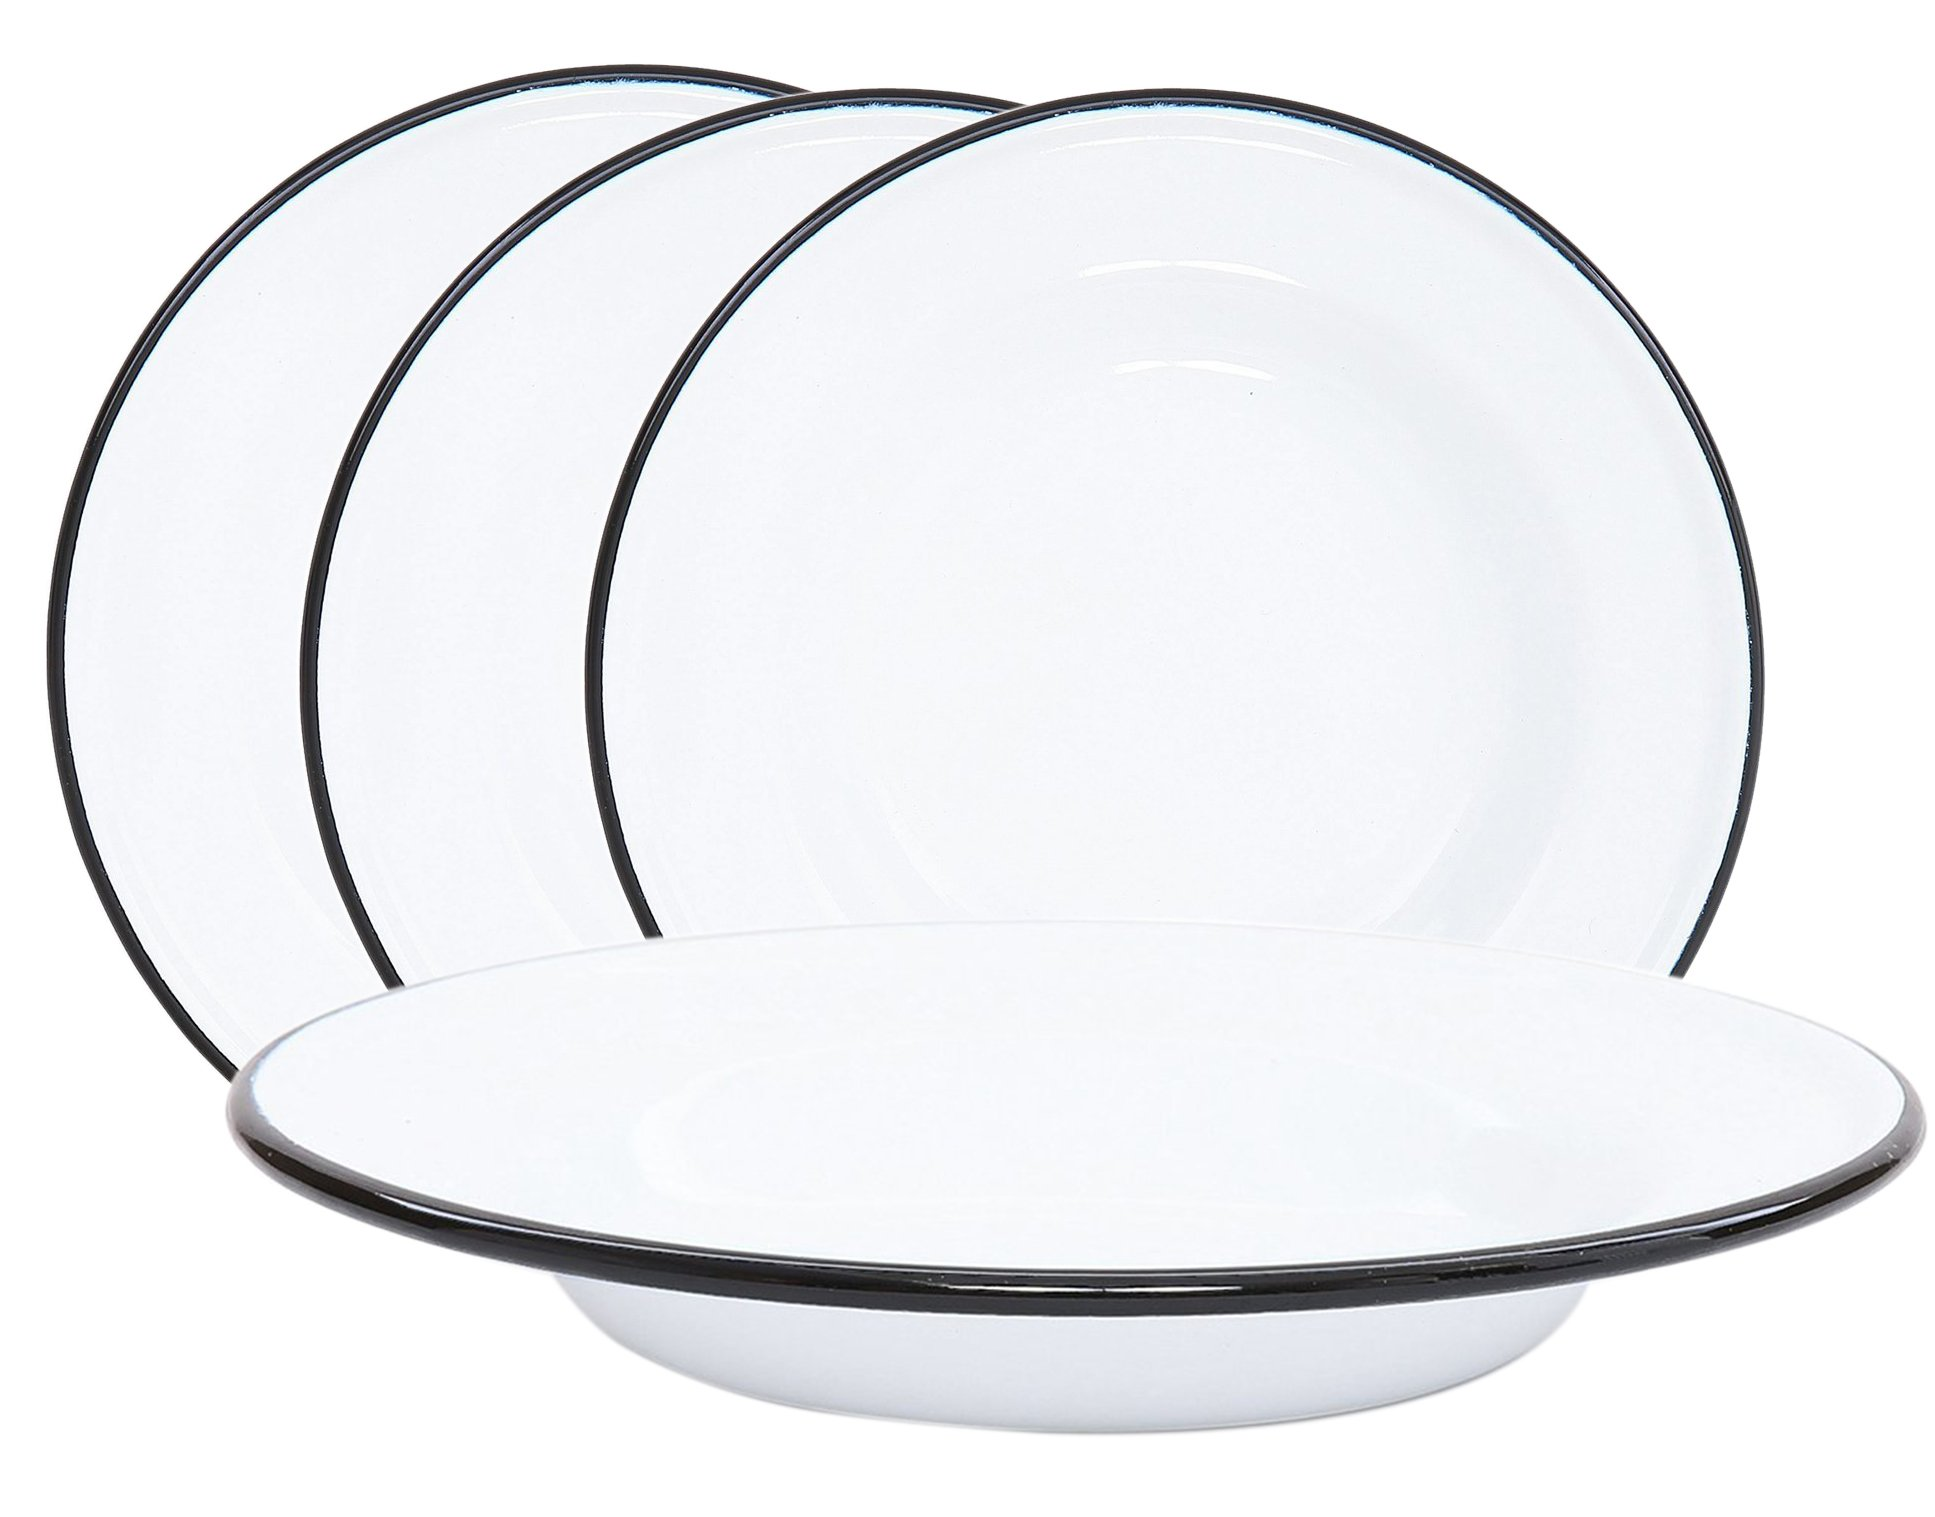 Crow Canyon Enamelware Round Dinner/Salad/Serving Plates, Classic Tableware - Set of 4 - Solid White with Black Rim Color, 8 Inches